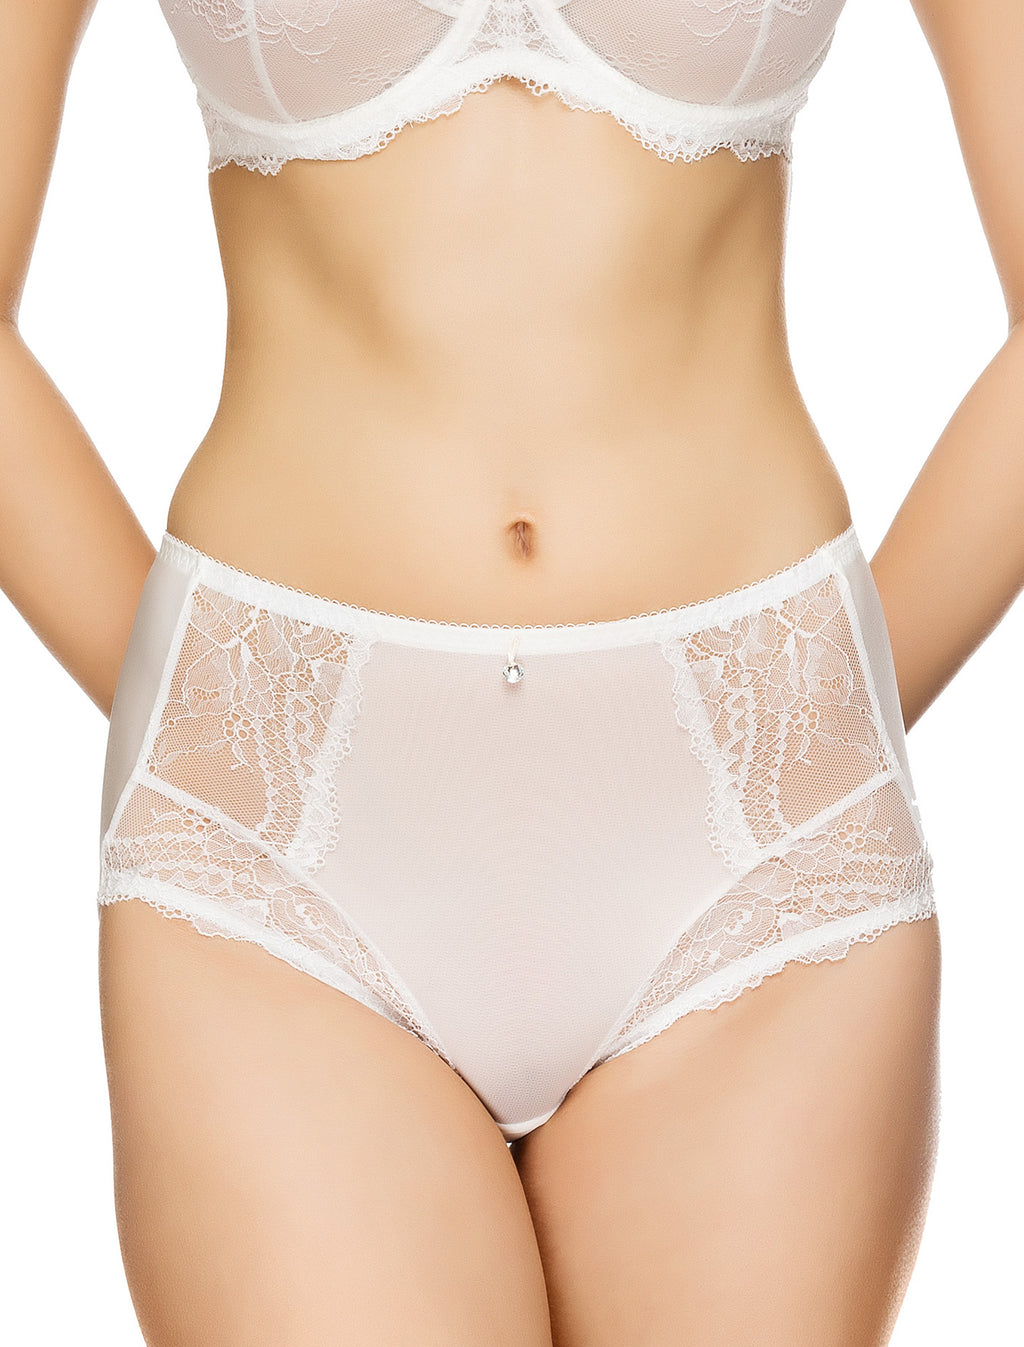 Lauma, Ivory High Waist Panties, On Model Front, 54G53